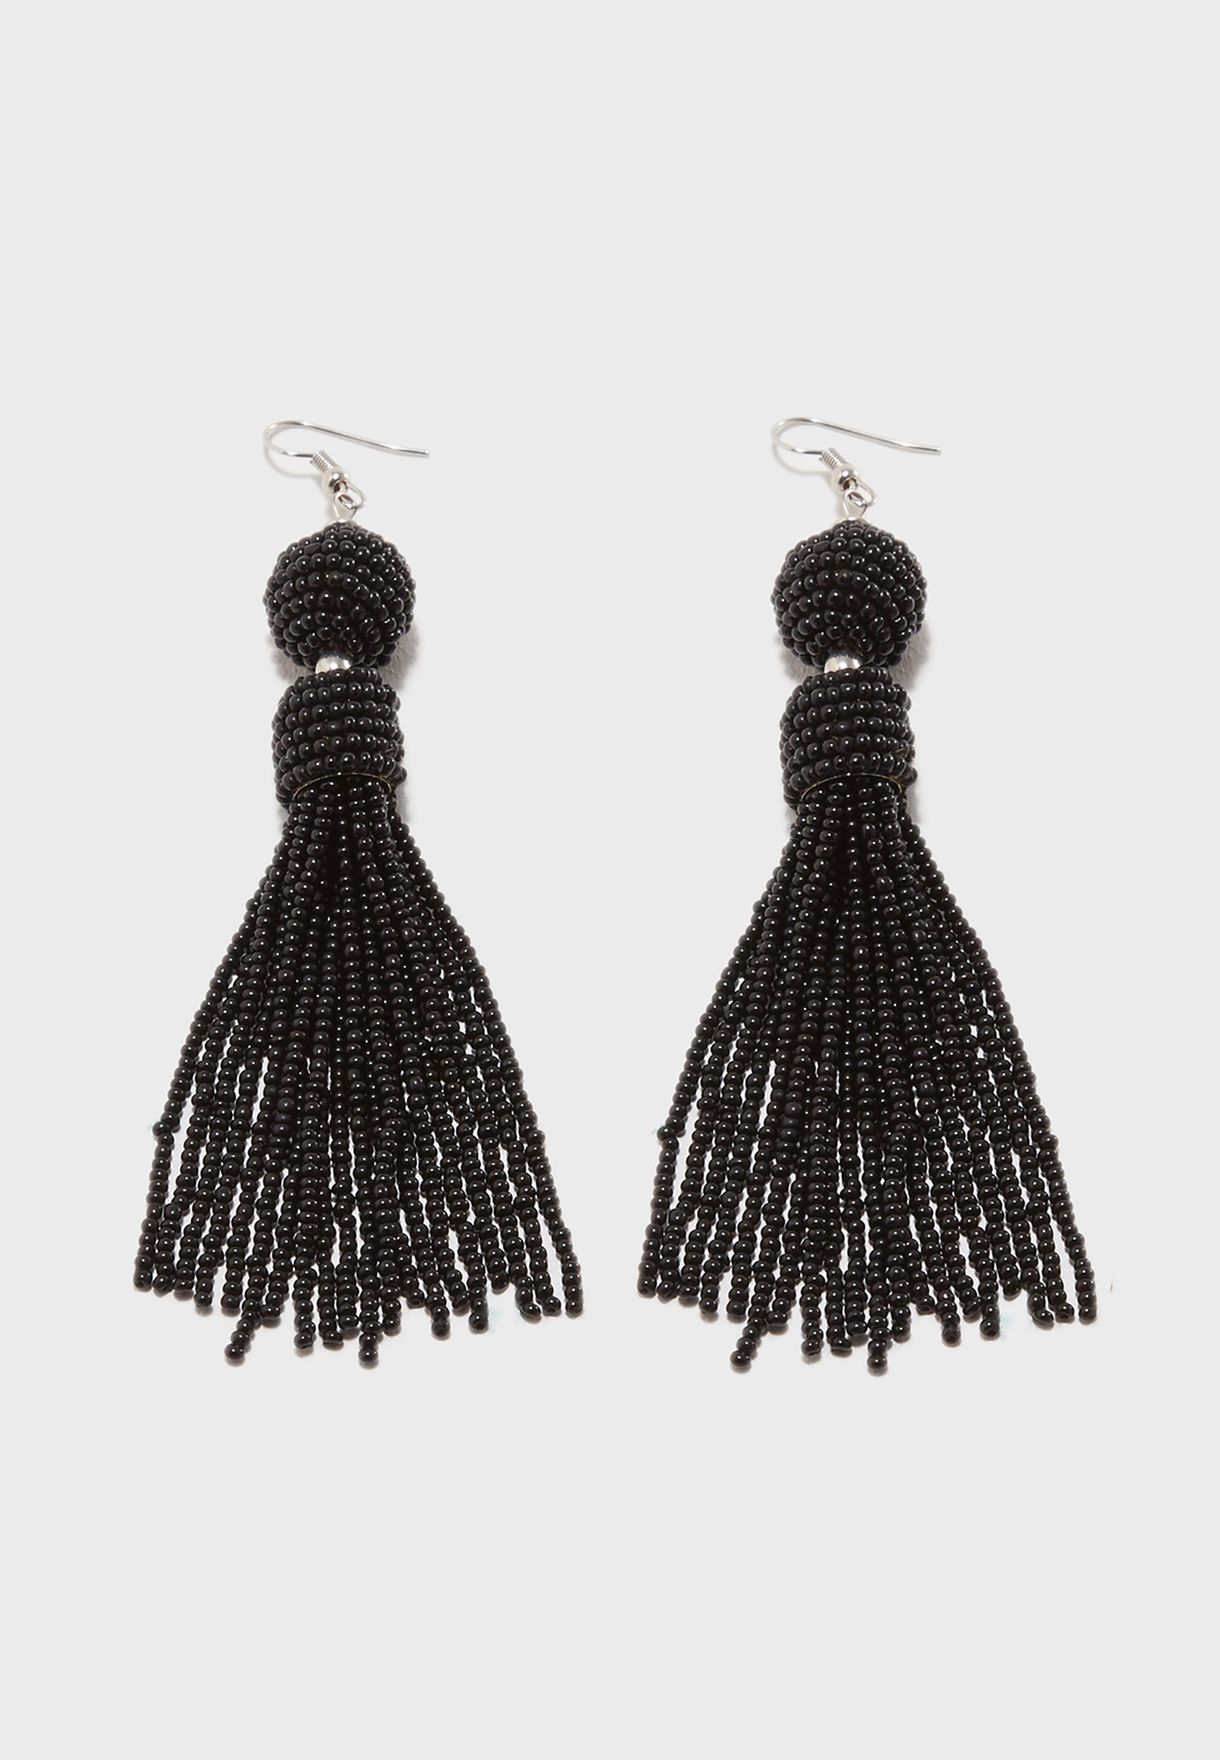 Shop Pieces Black Maise Drop Earrings 17088127 For Women In Uae